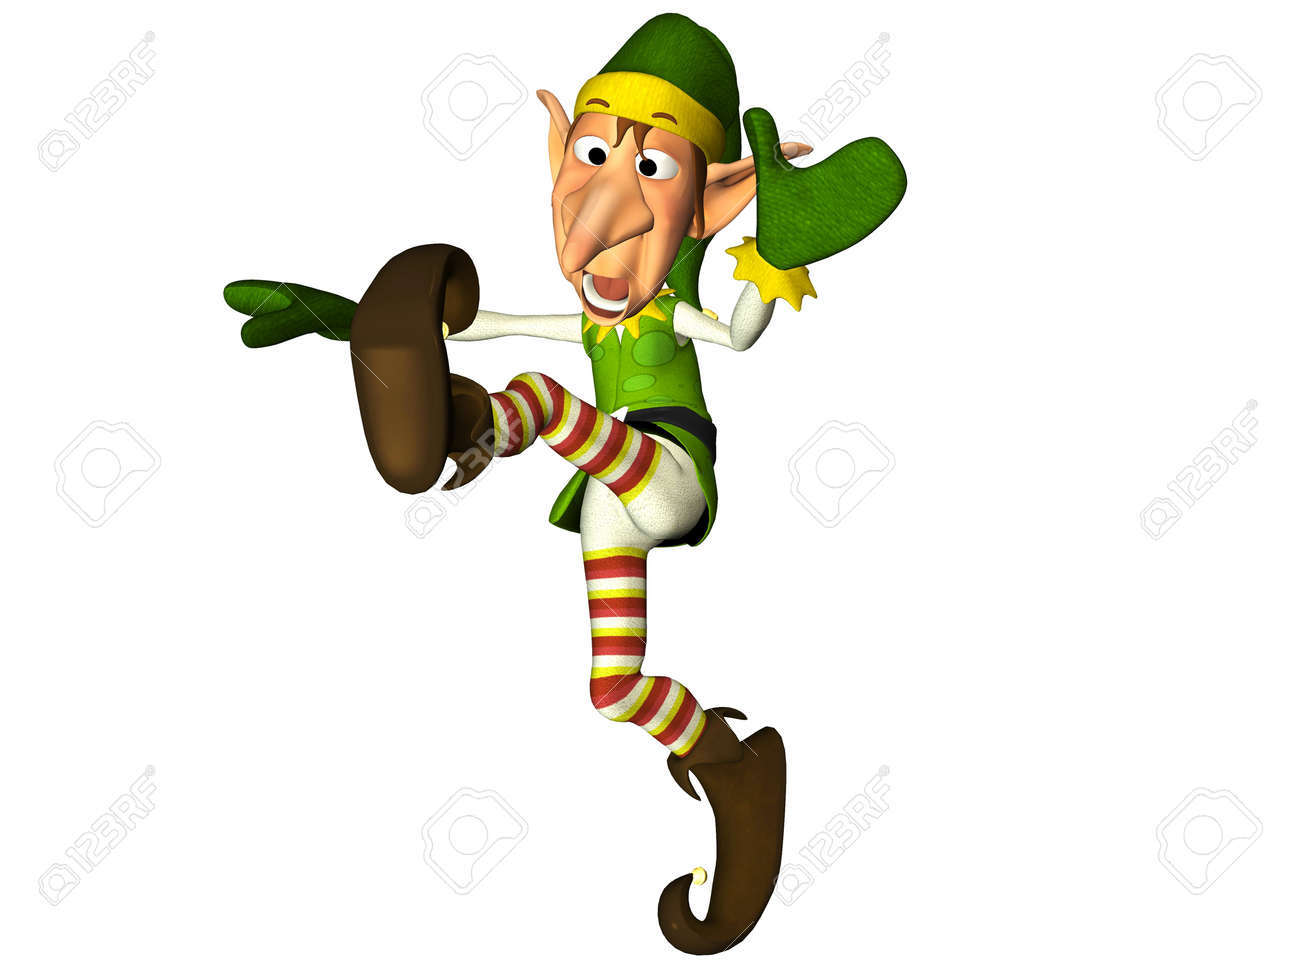 Illustration of a christmas elf isolated on a white background Stock Photo - 12744844